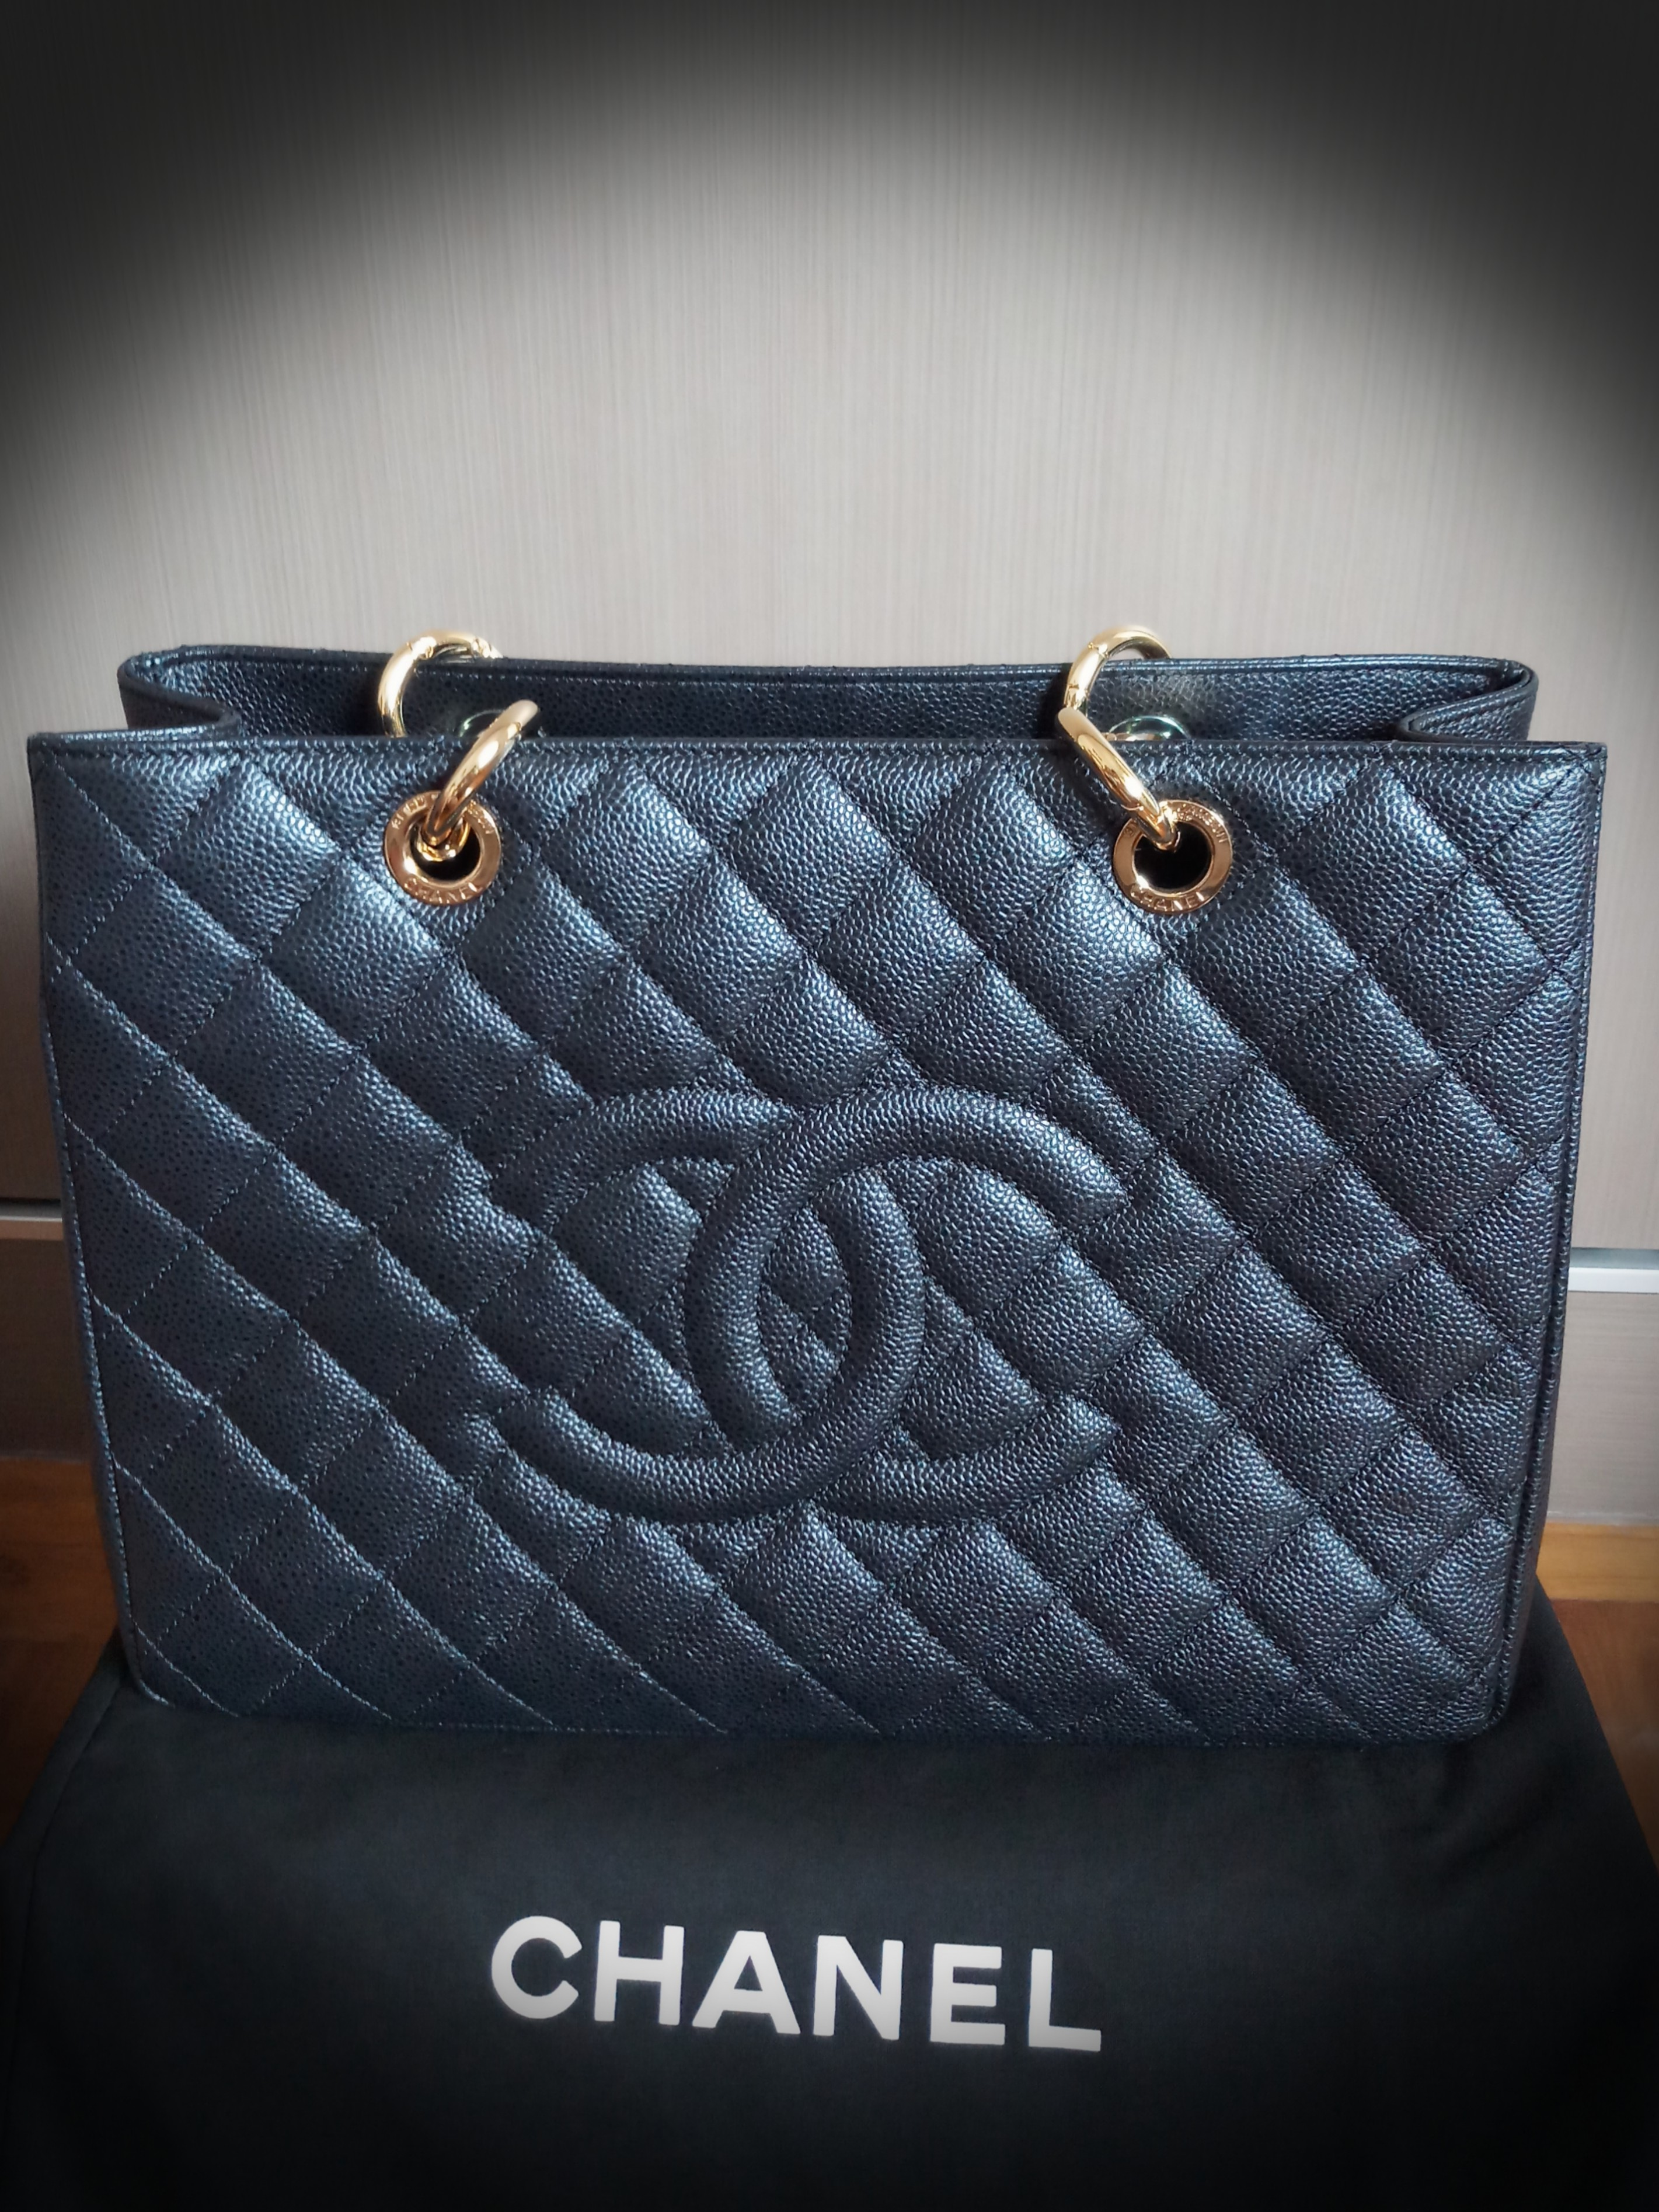 9df1bf6446c7 Authentic CHANEL Caviar Quilted Grand Shopping Tote GST Black ...